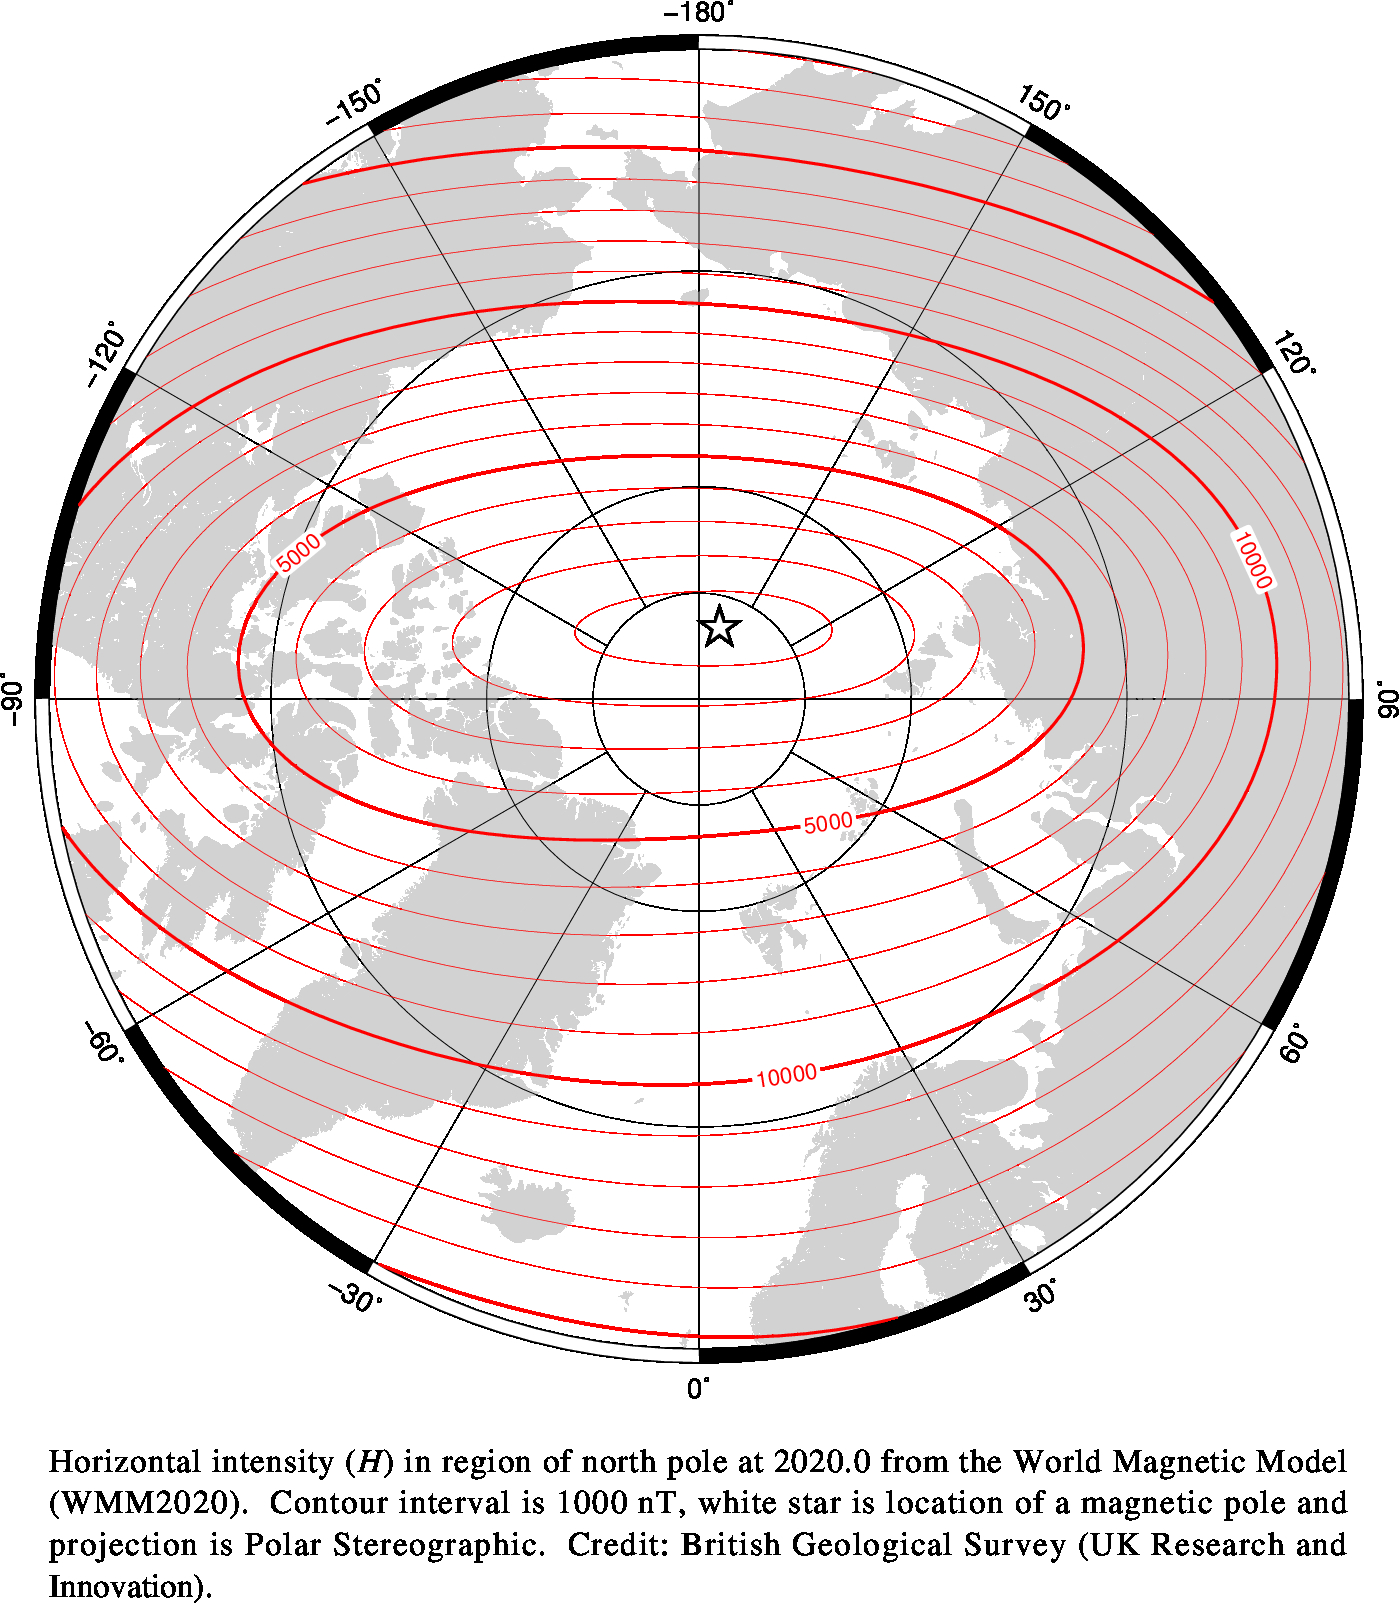 Magnetic chart showing Horizontal Intensity